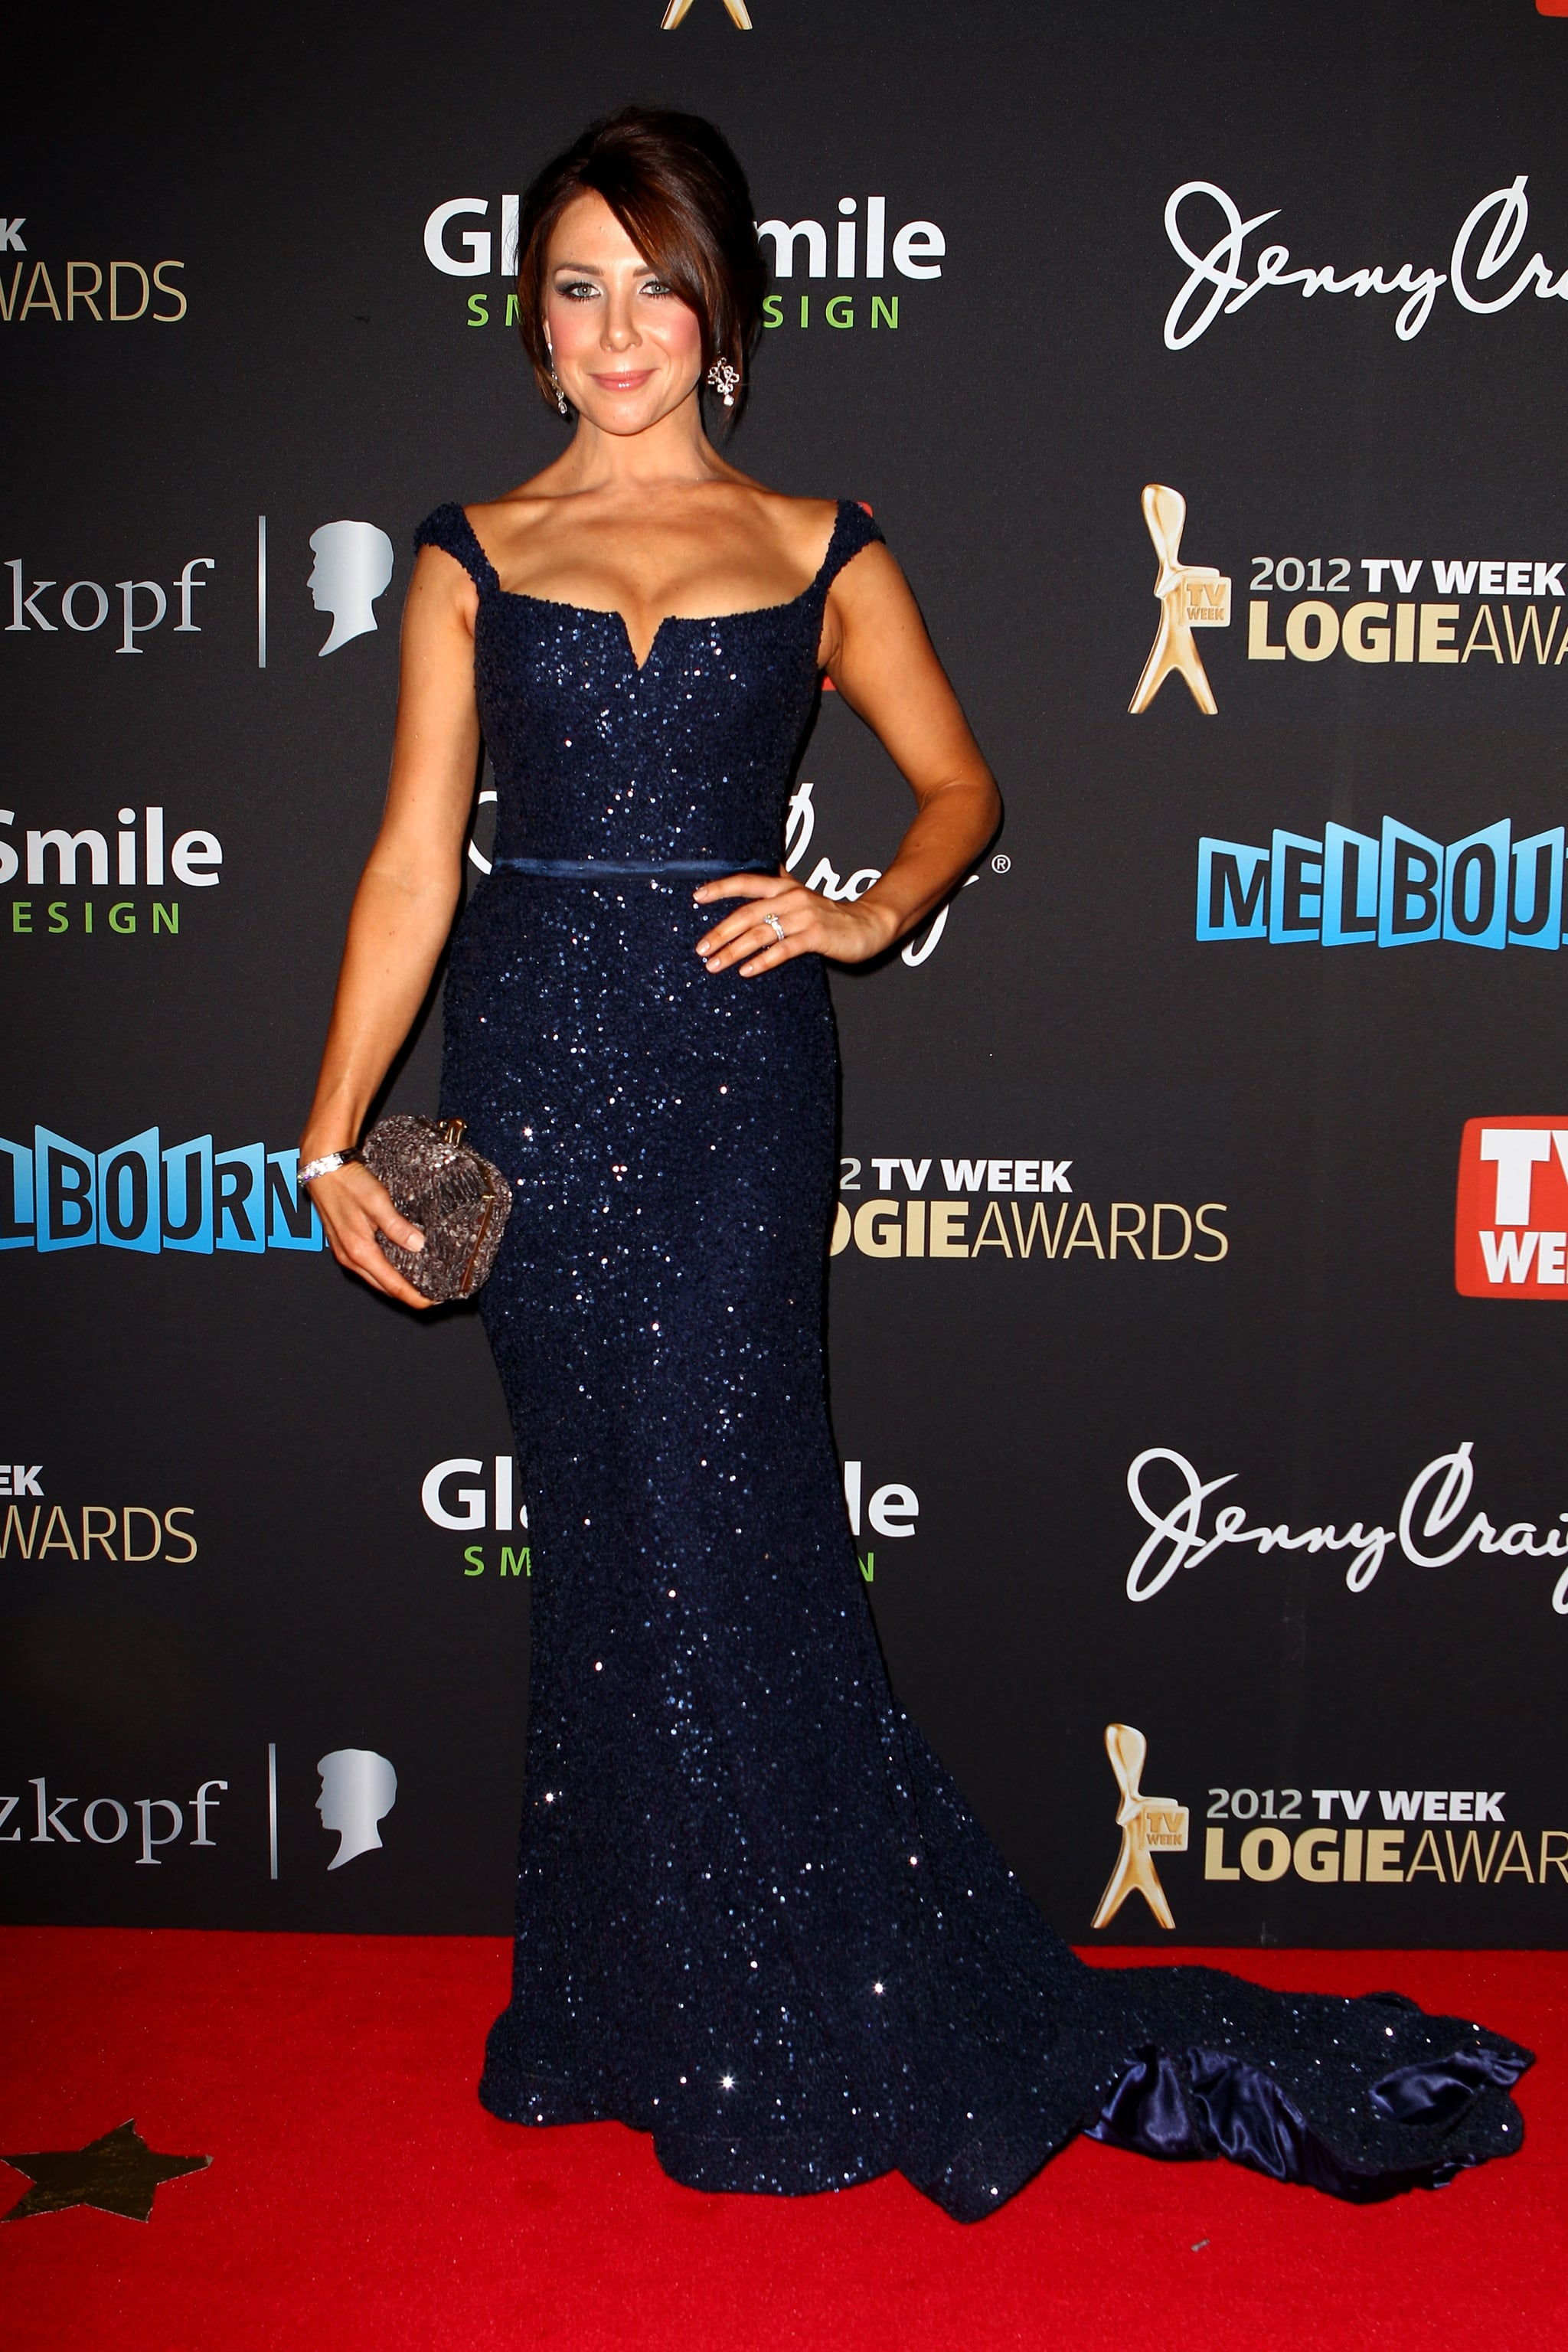 kate ritchie - photo #37